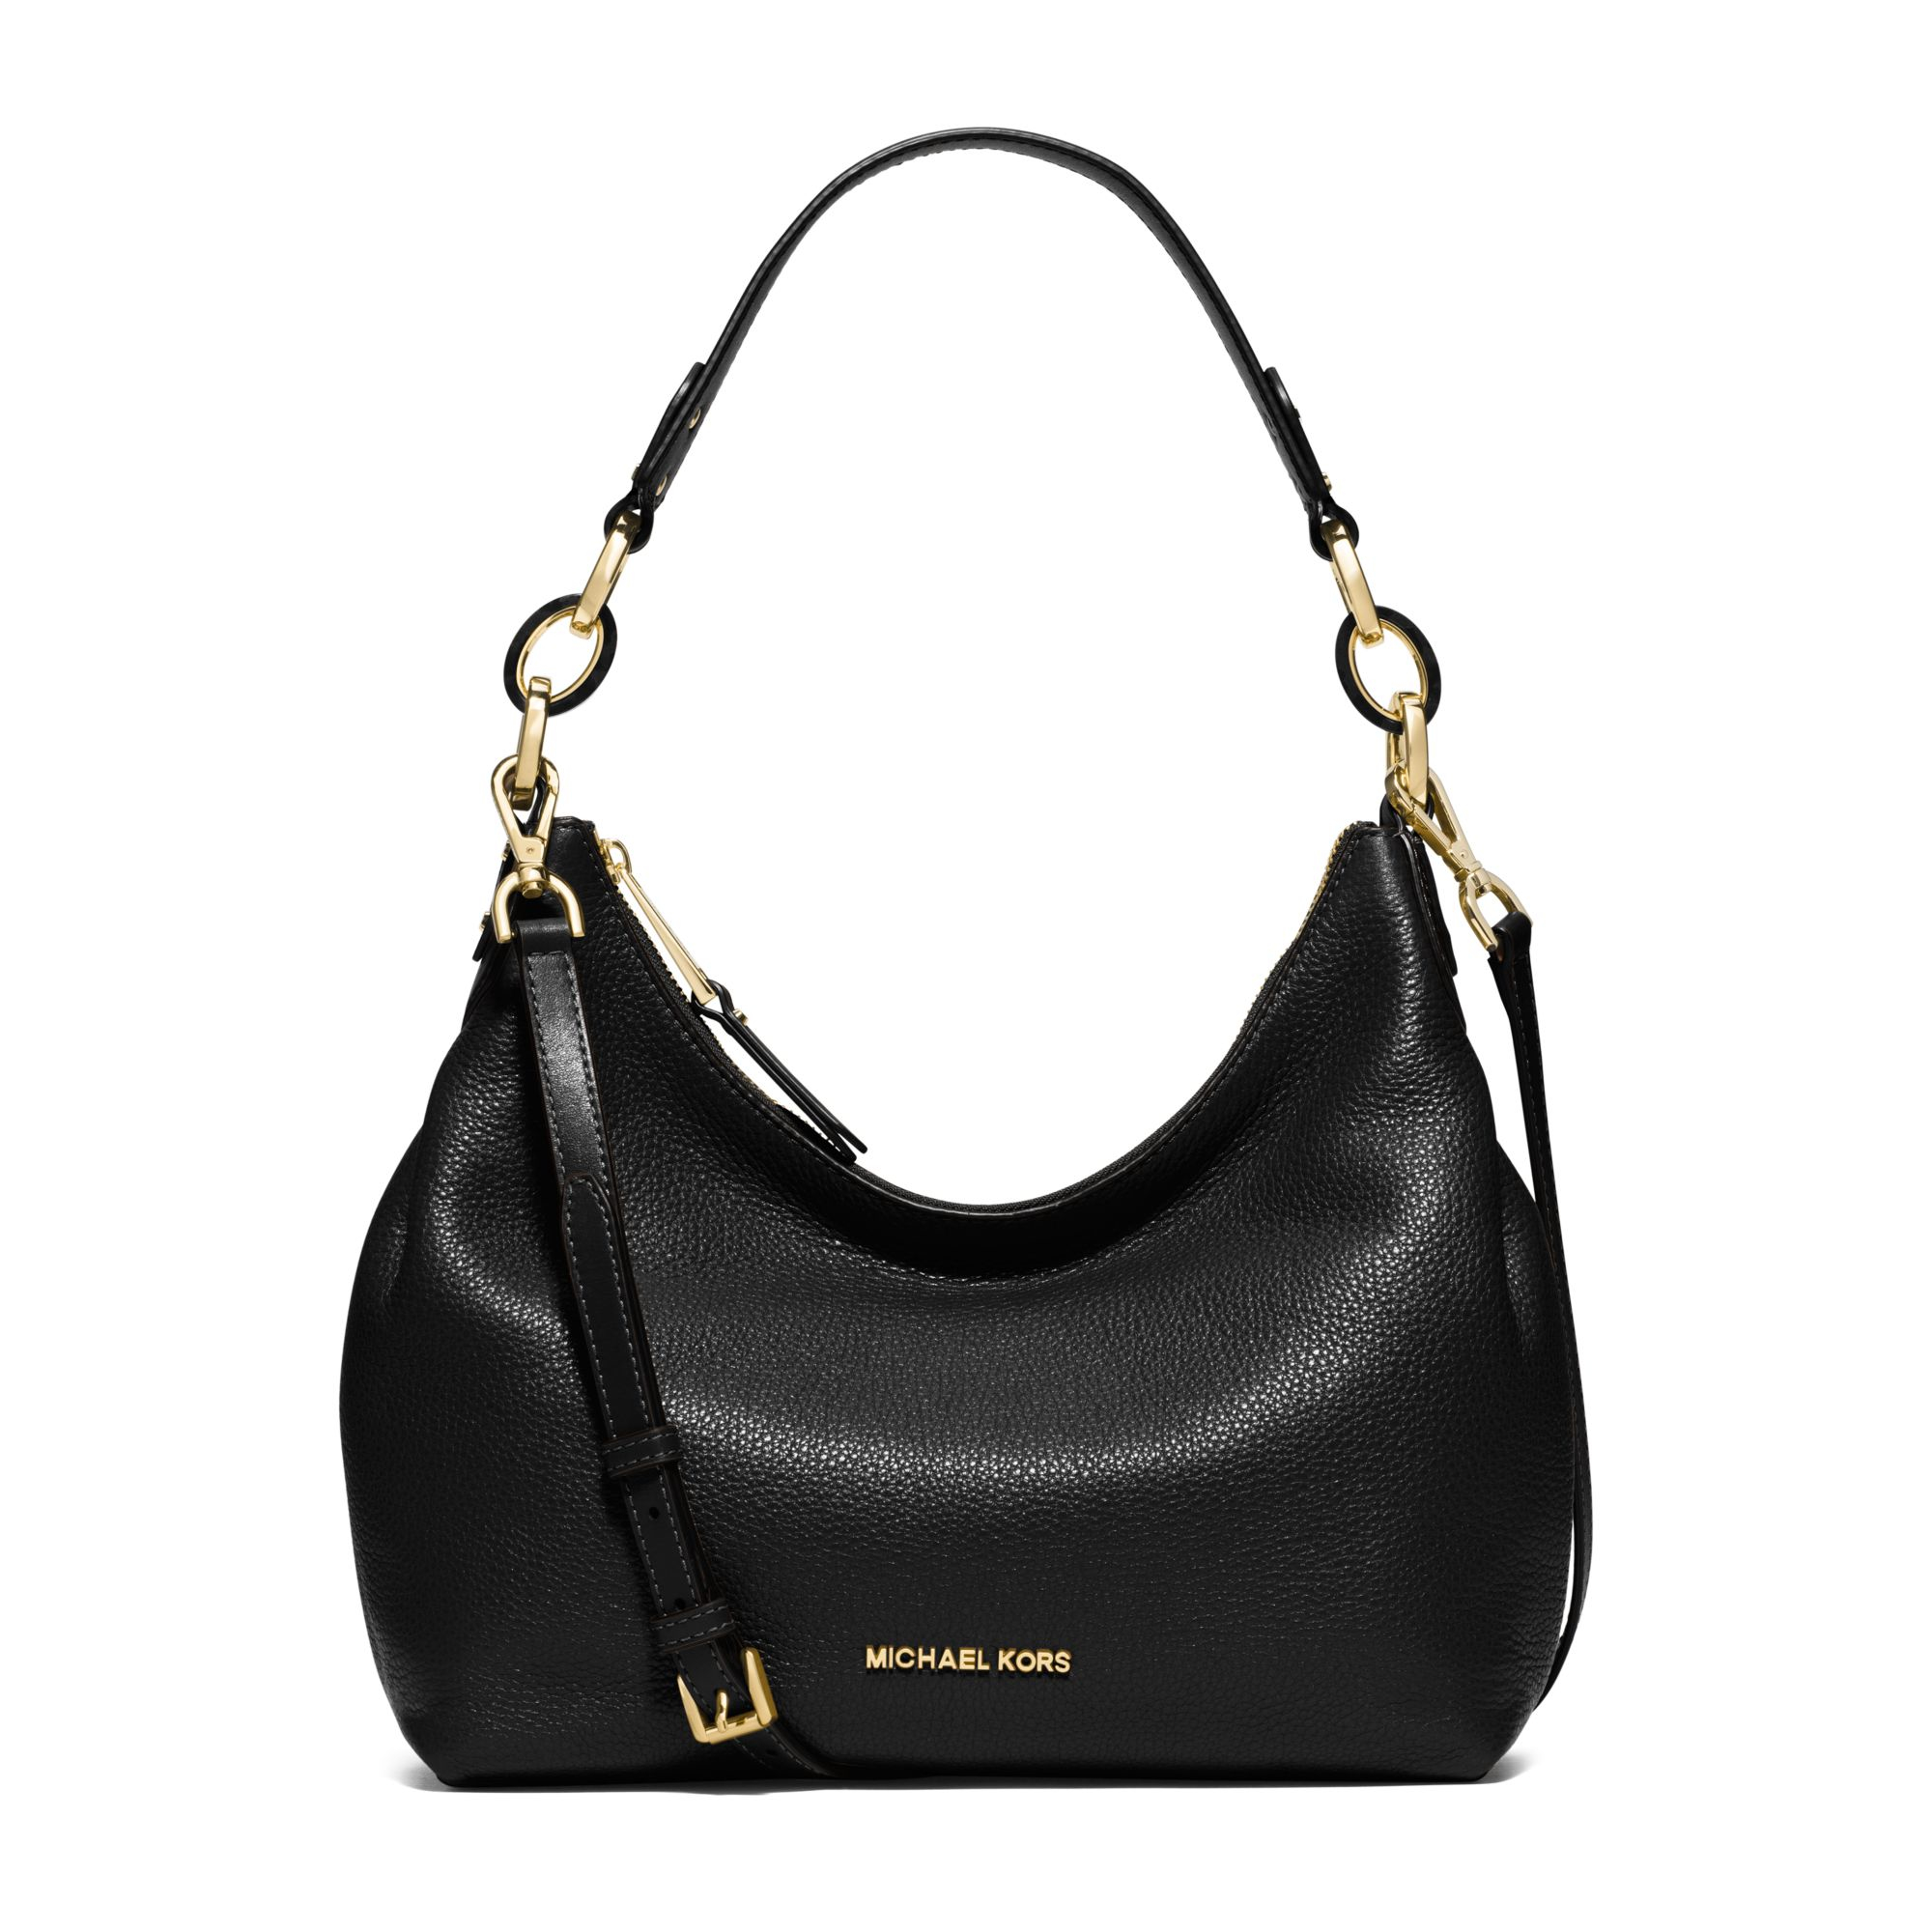 Michael kors Isabella Medium Leather Shoulder Bag in Black | Lyst